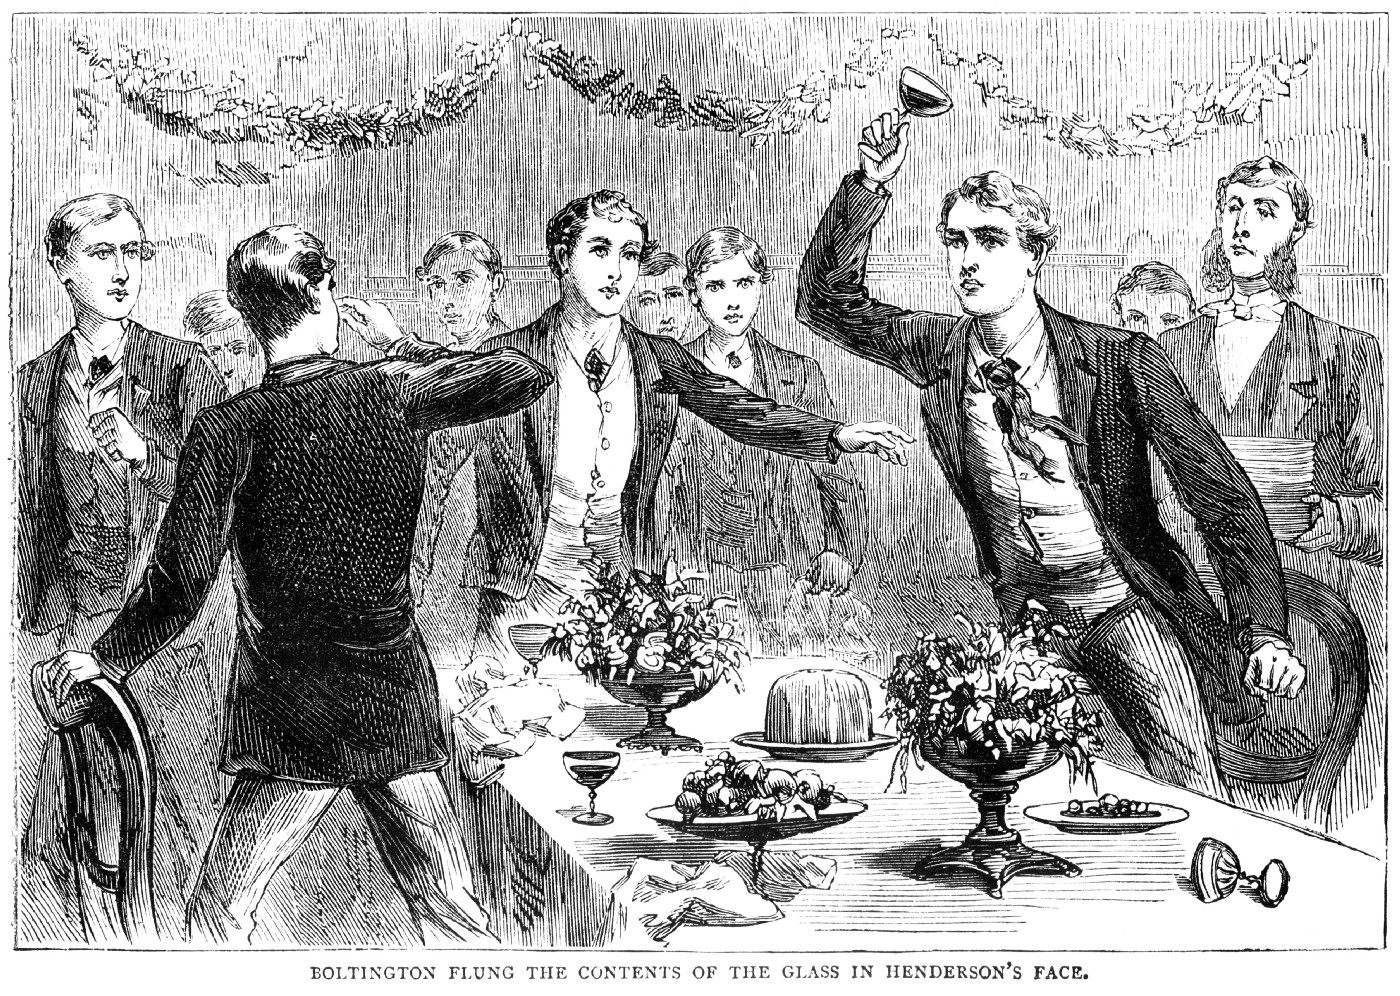 An illustration of a group of young upper-class males having an argument at the dinner table, with one throwing wine into another's face.